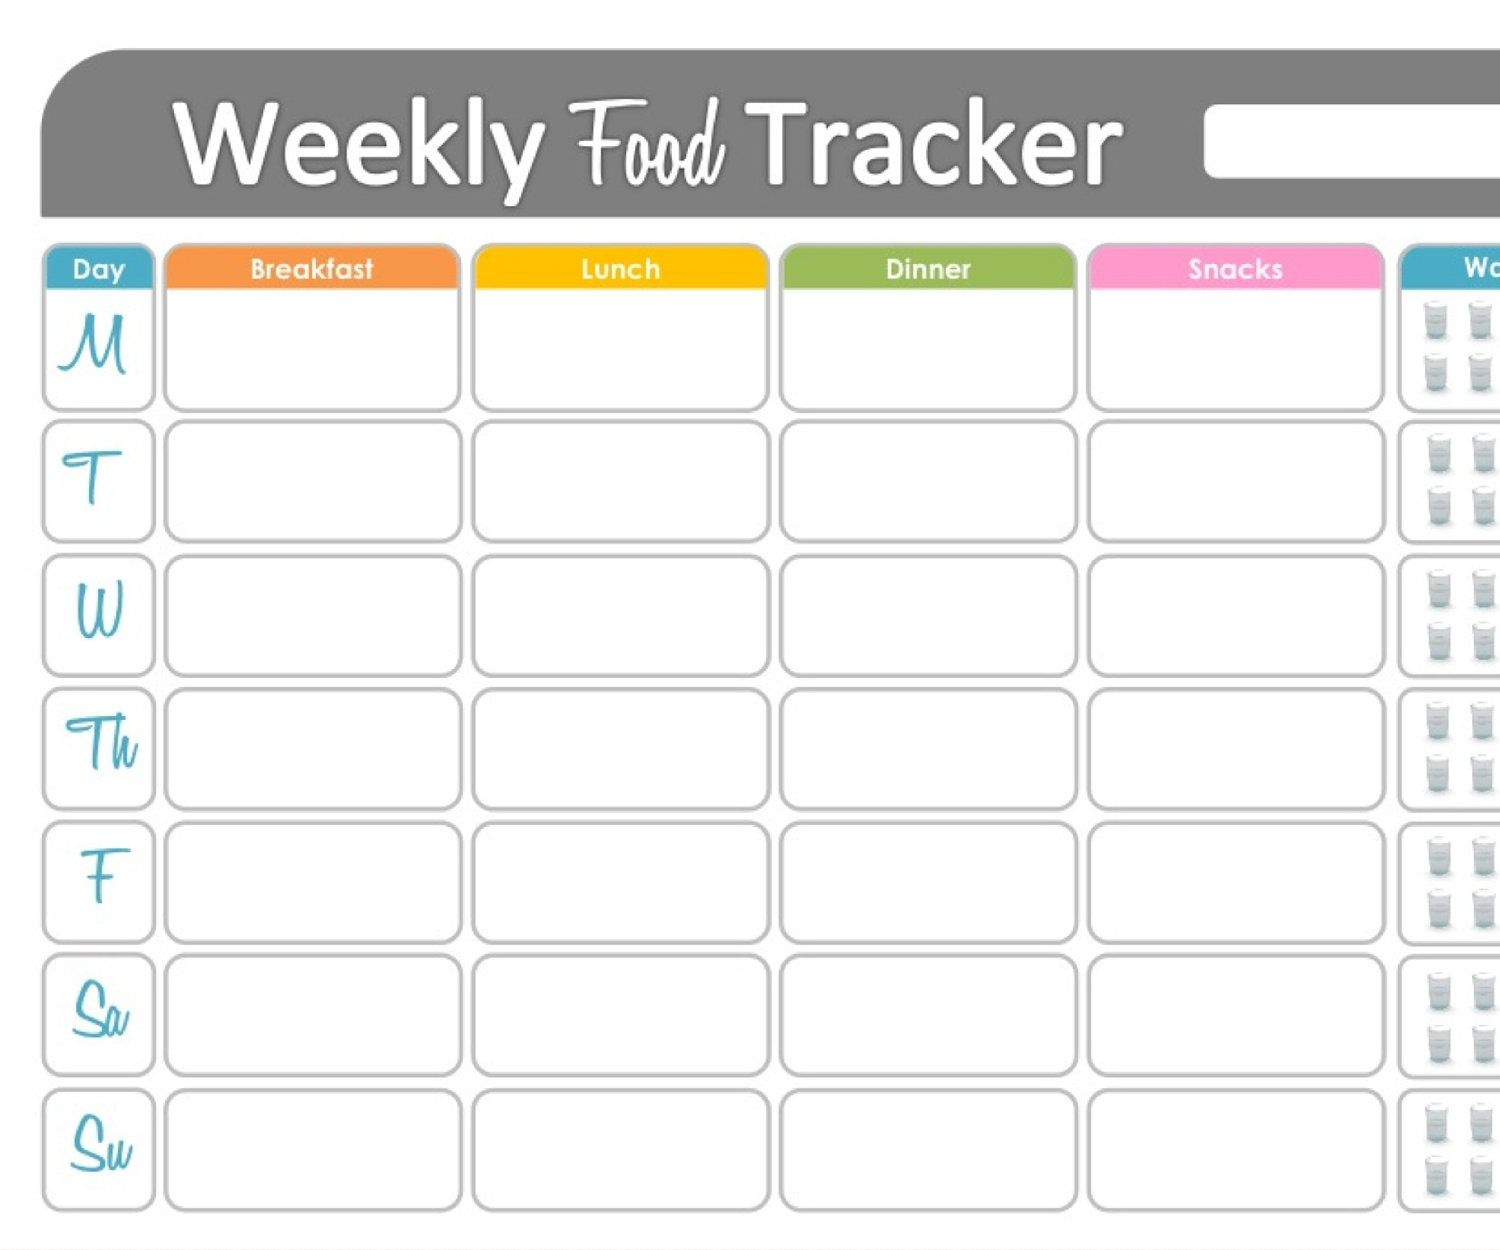 Weekly Food Tracker